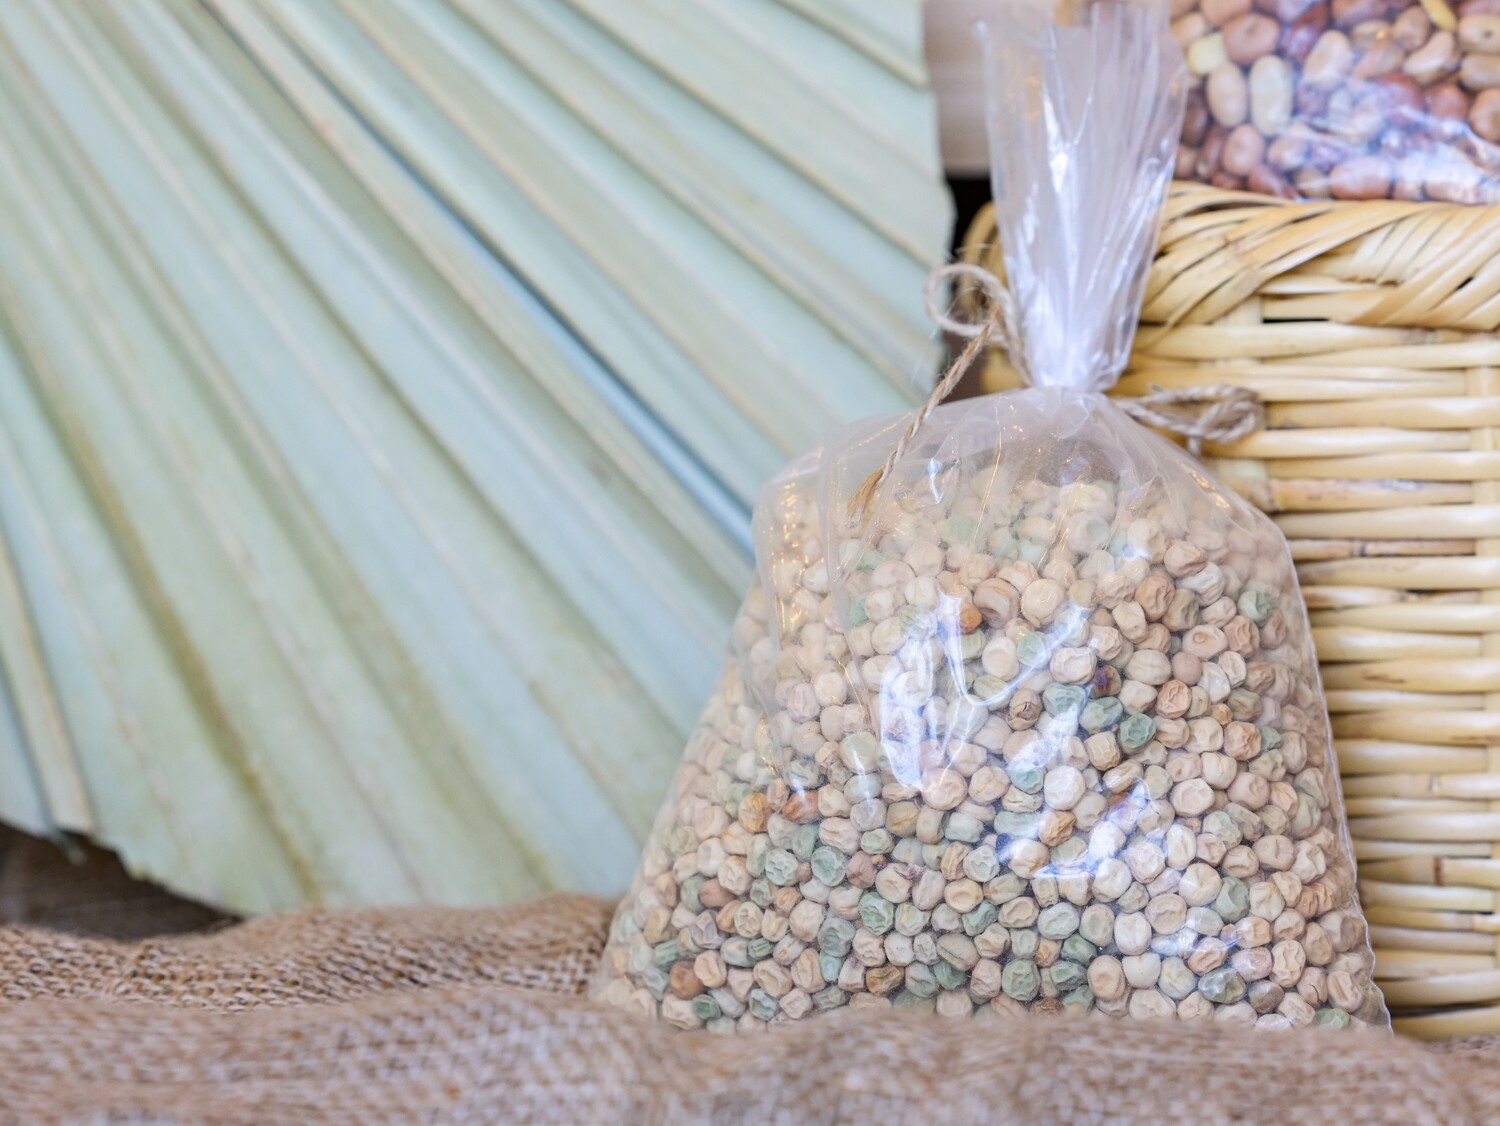 Peas Dried Grains (Bag) - Nature by Marc Beyrouthy